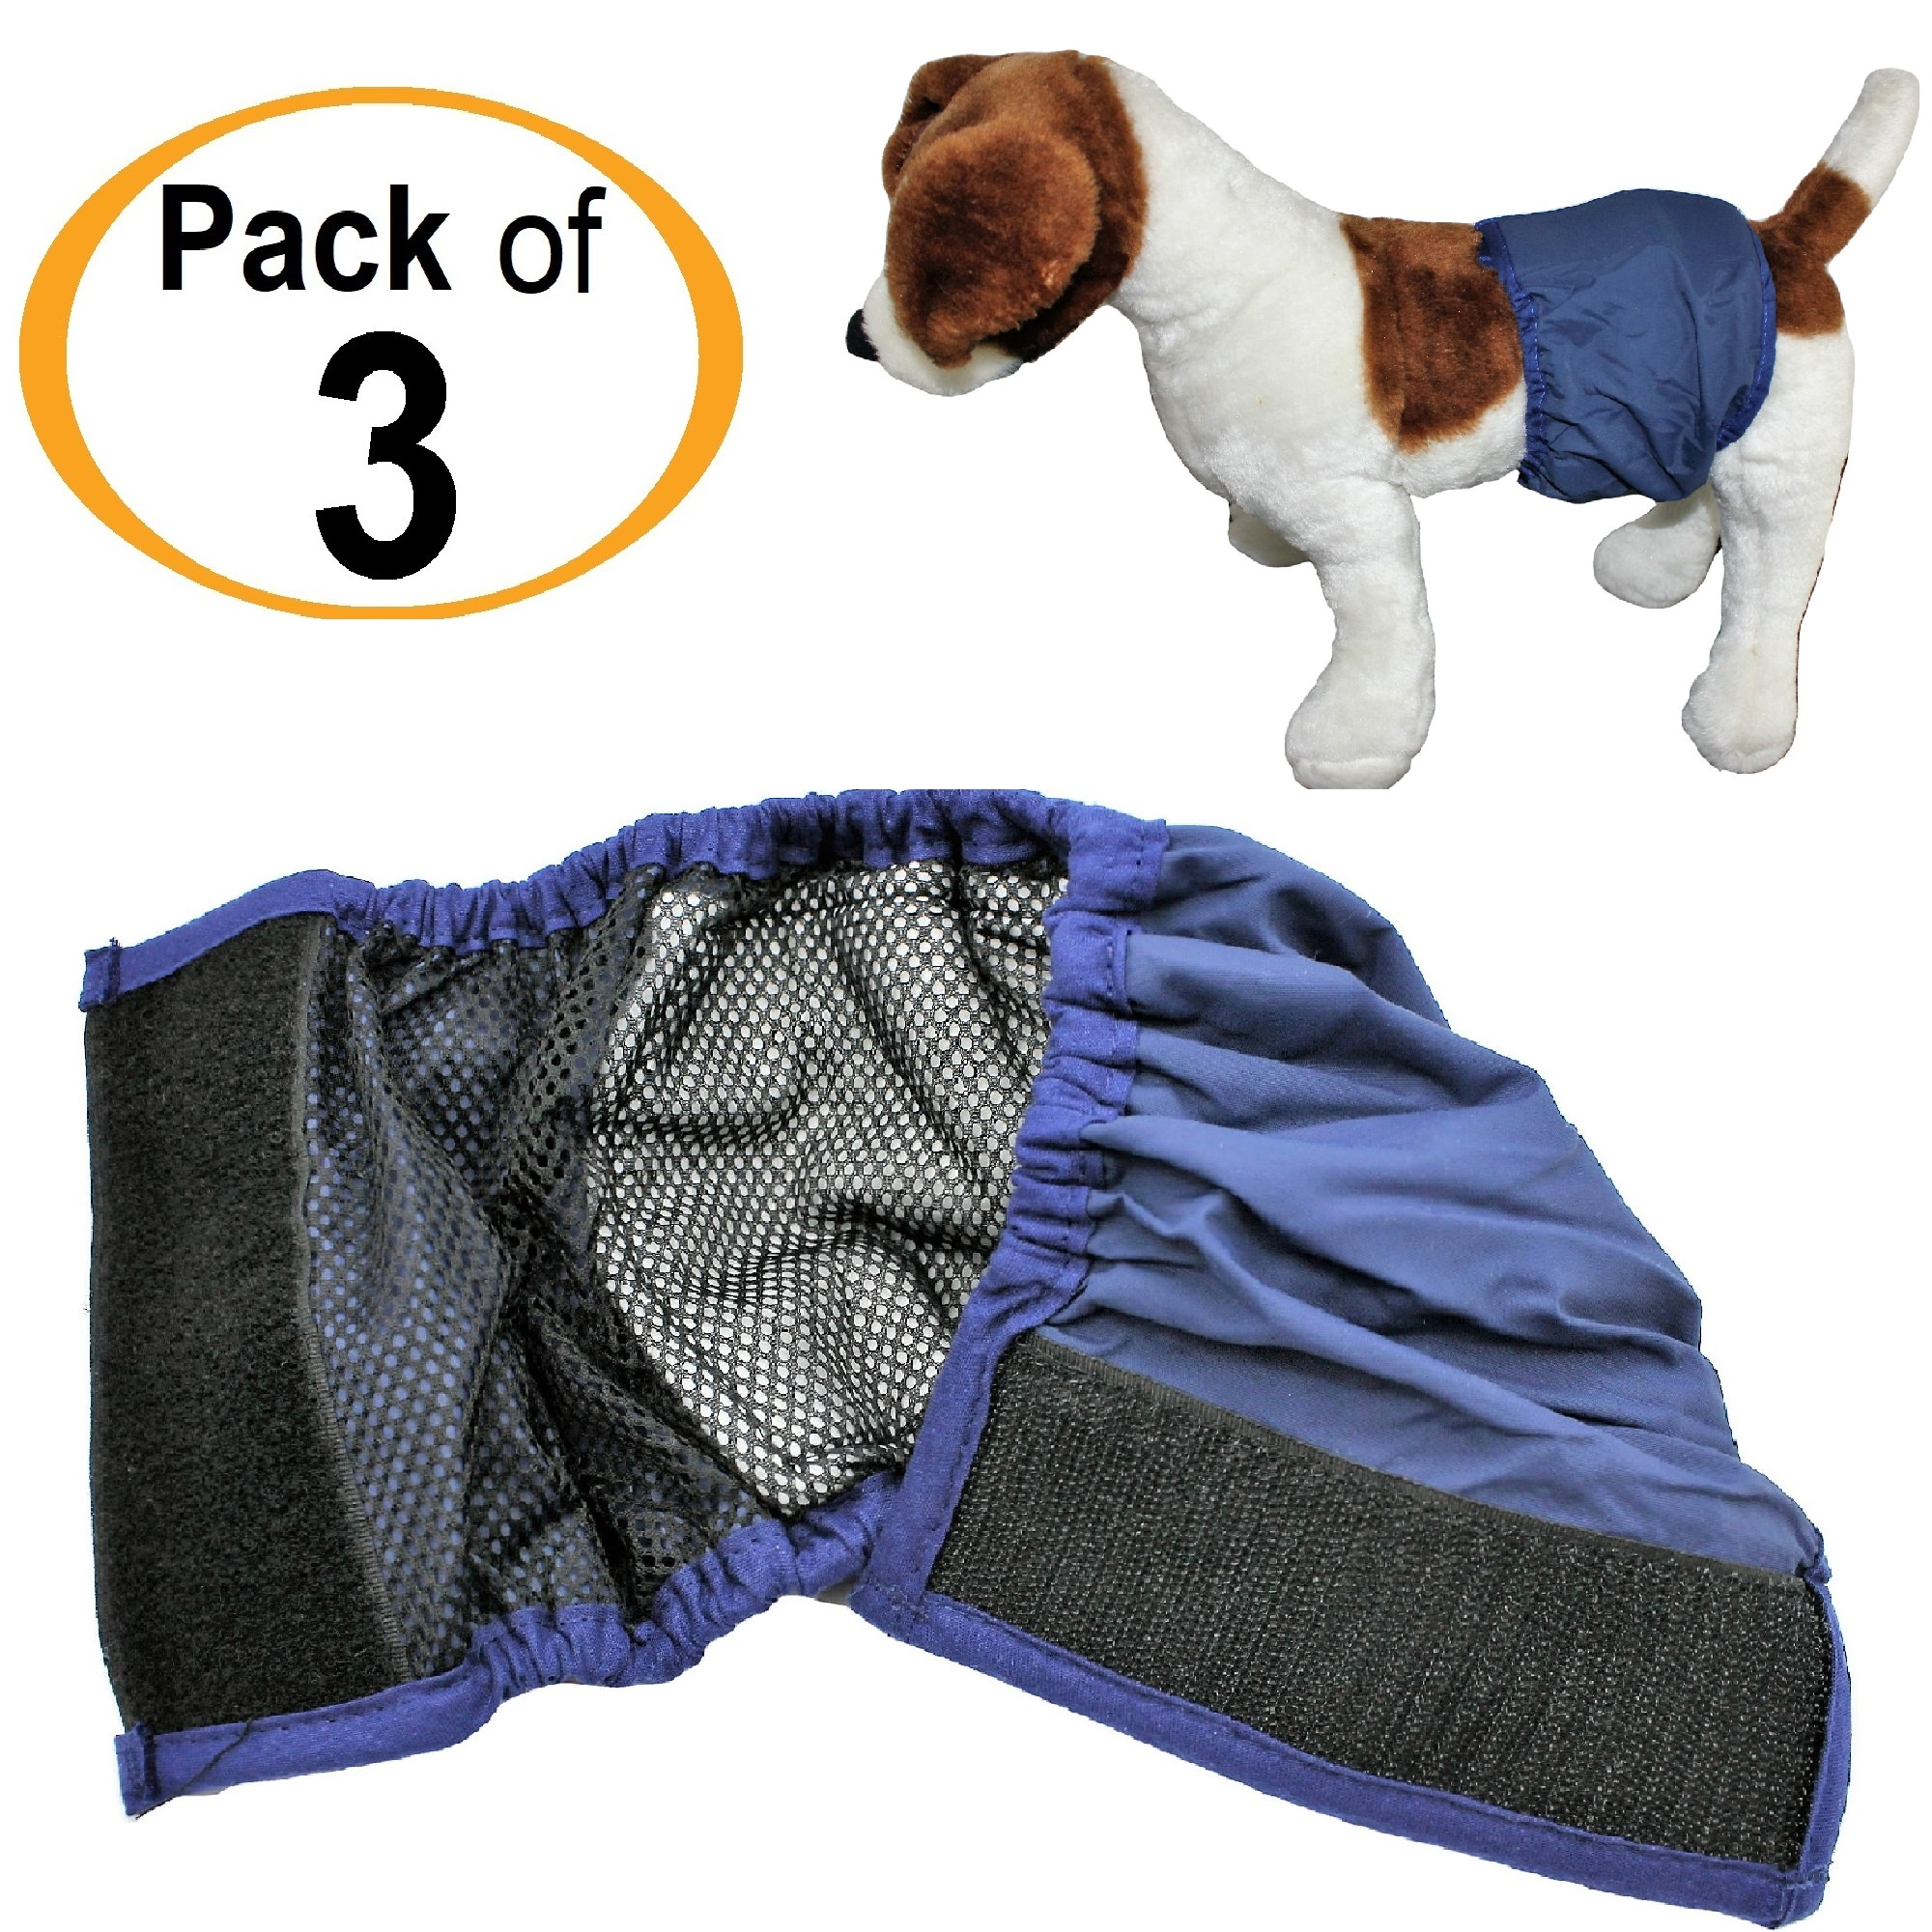 "PACK - 3pcs WASHABLE Dog MALE Diaper Belly Band Lined WITH ABSORBENT PAD Reusable Small Medium Large Breed sz XX-Small (waist: 6"" -  8"")"